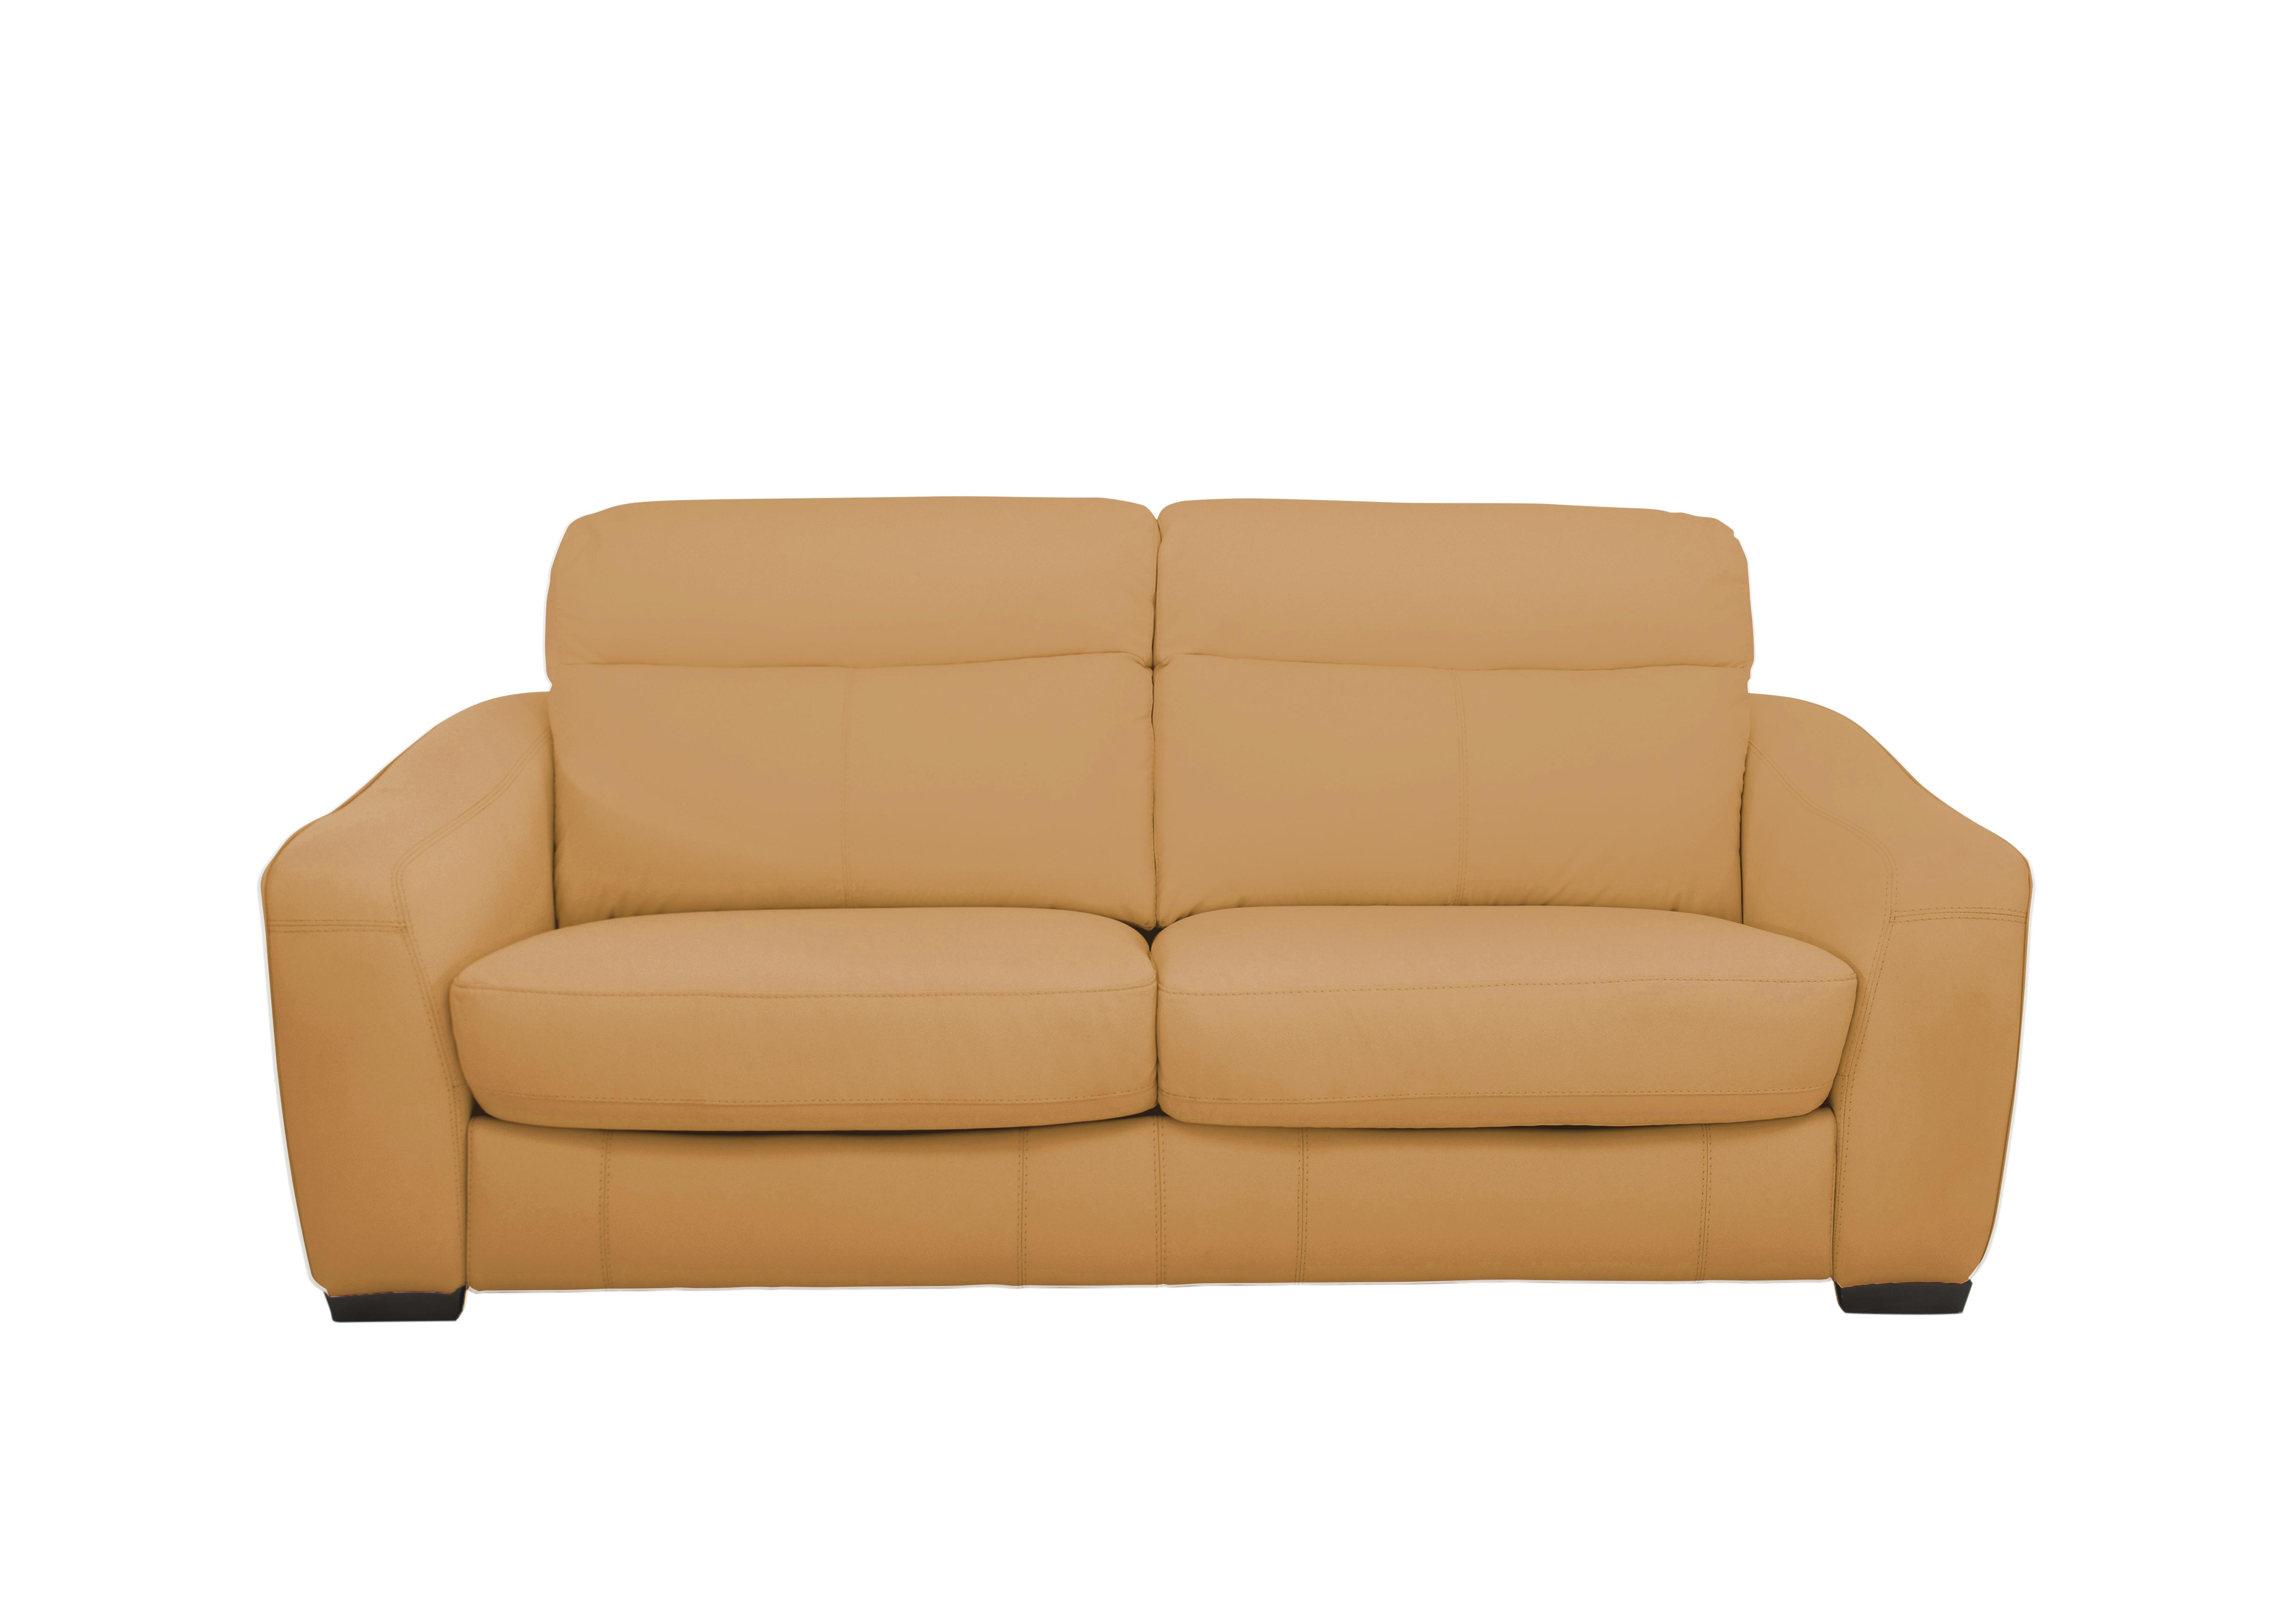 Yellow Sofas at Exceptional Prices - Furniture Village